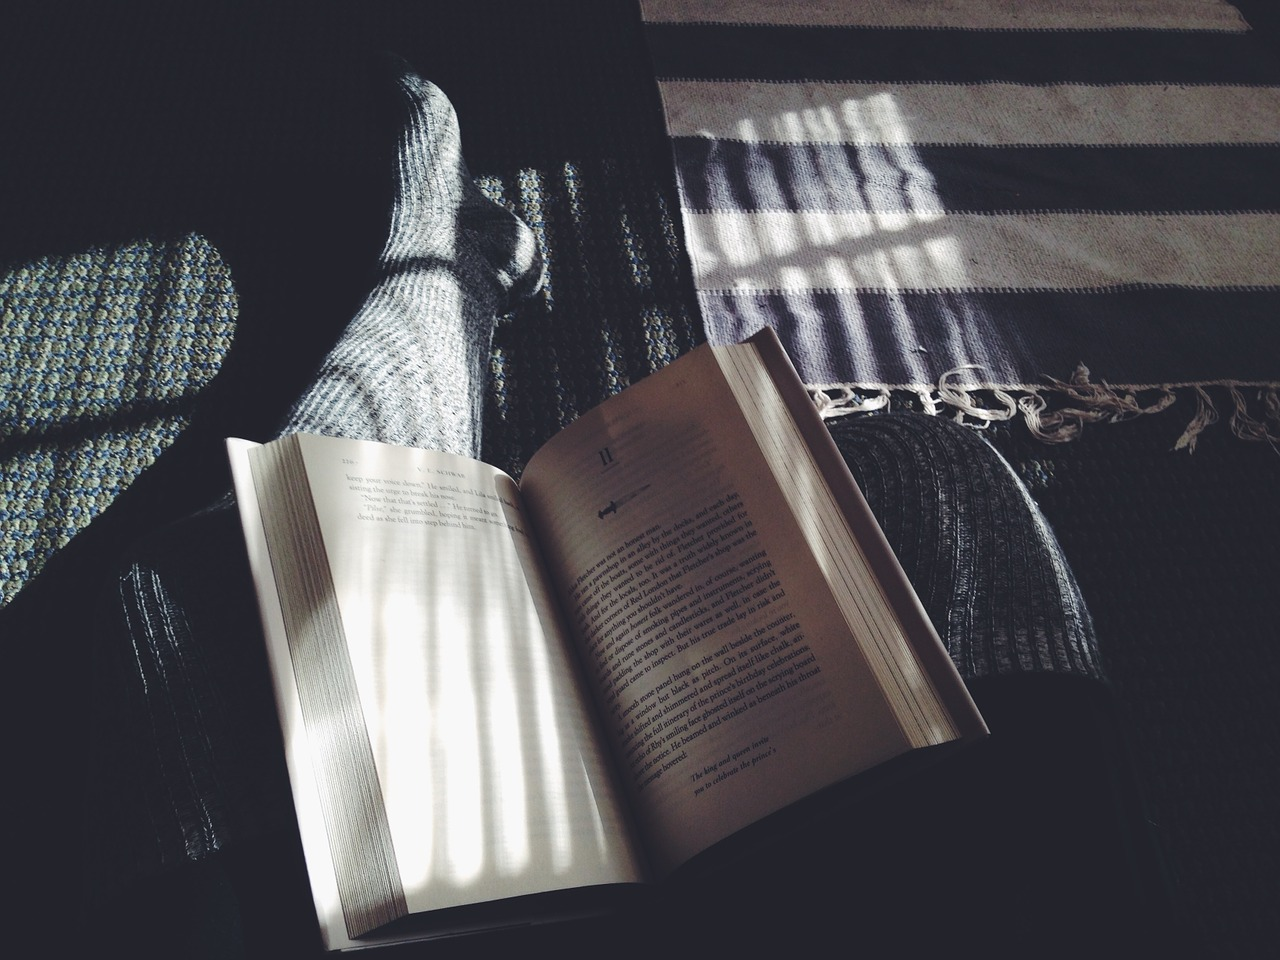 An open book rests on a students leg